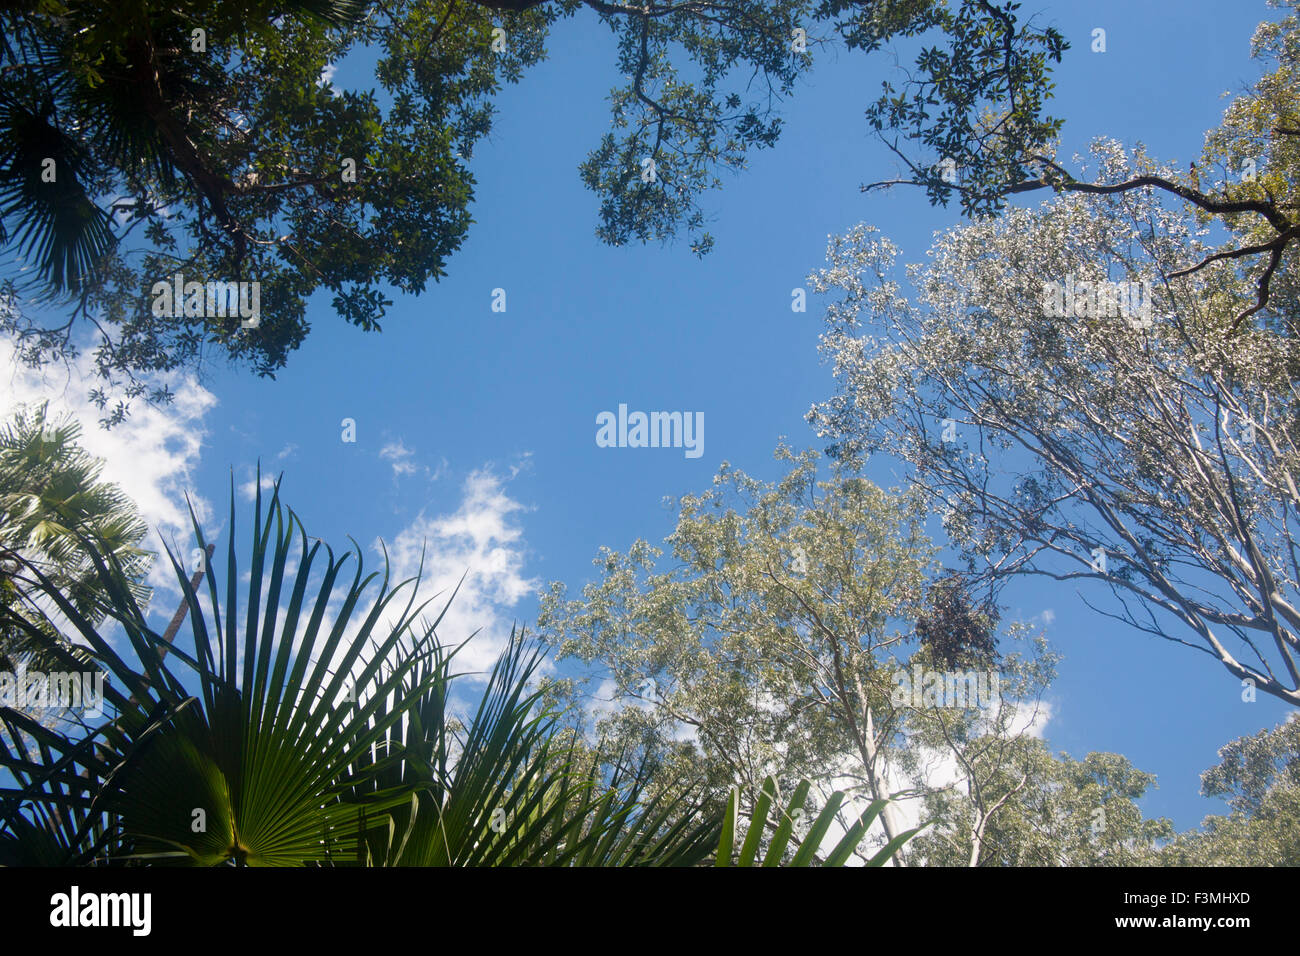 Typical Australian forest canopy with eucalyptus and palm trees Queensland Australia - Stock Image